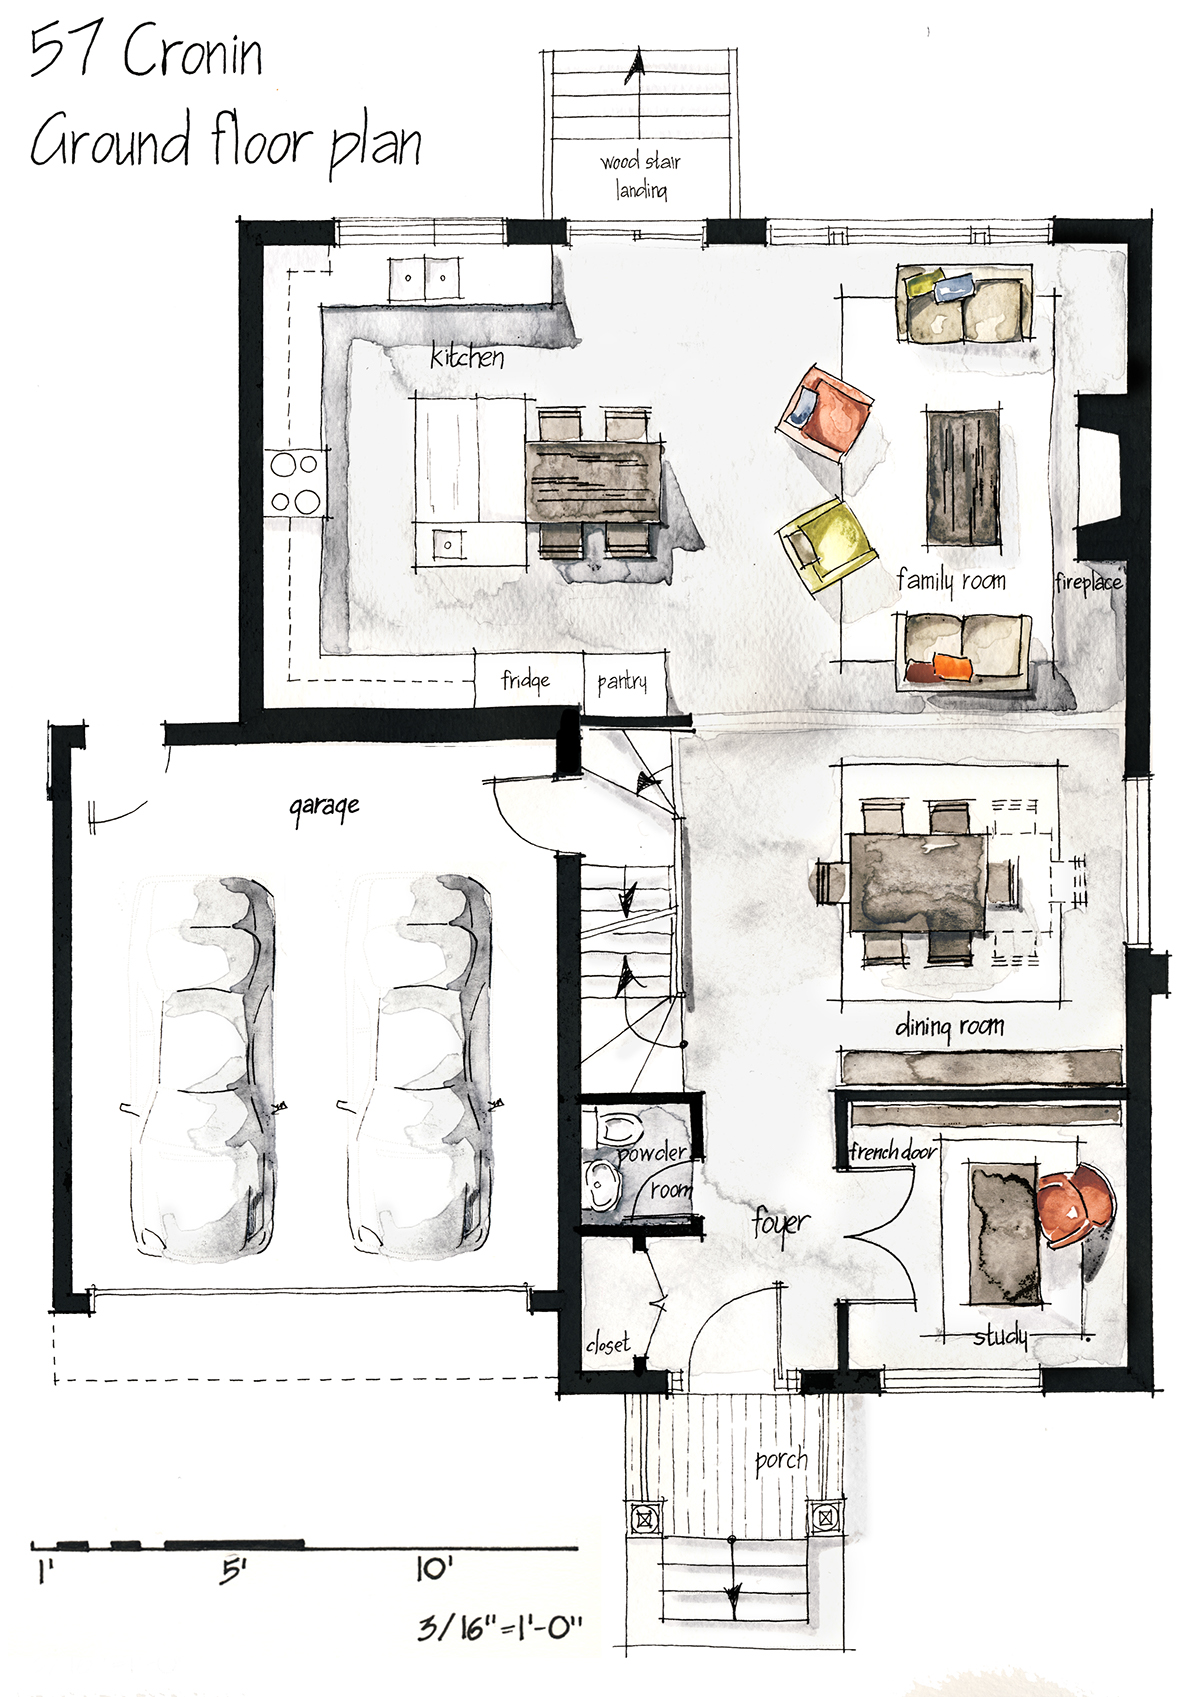 Real estate watercolor 2d floor plans part 1 on behance for Interior design layout drawing